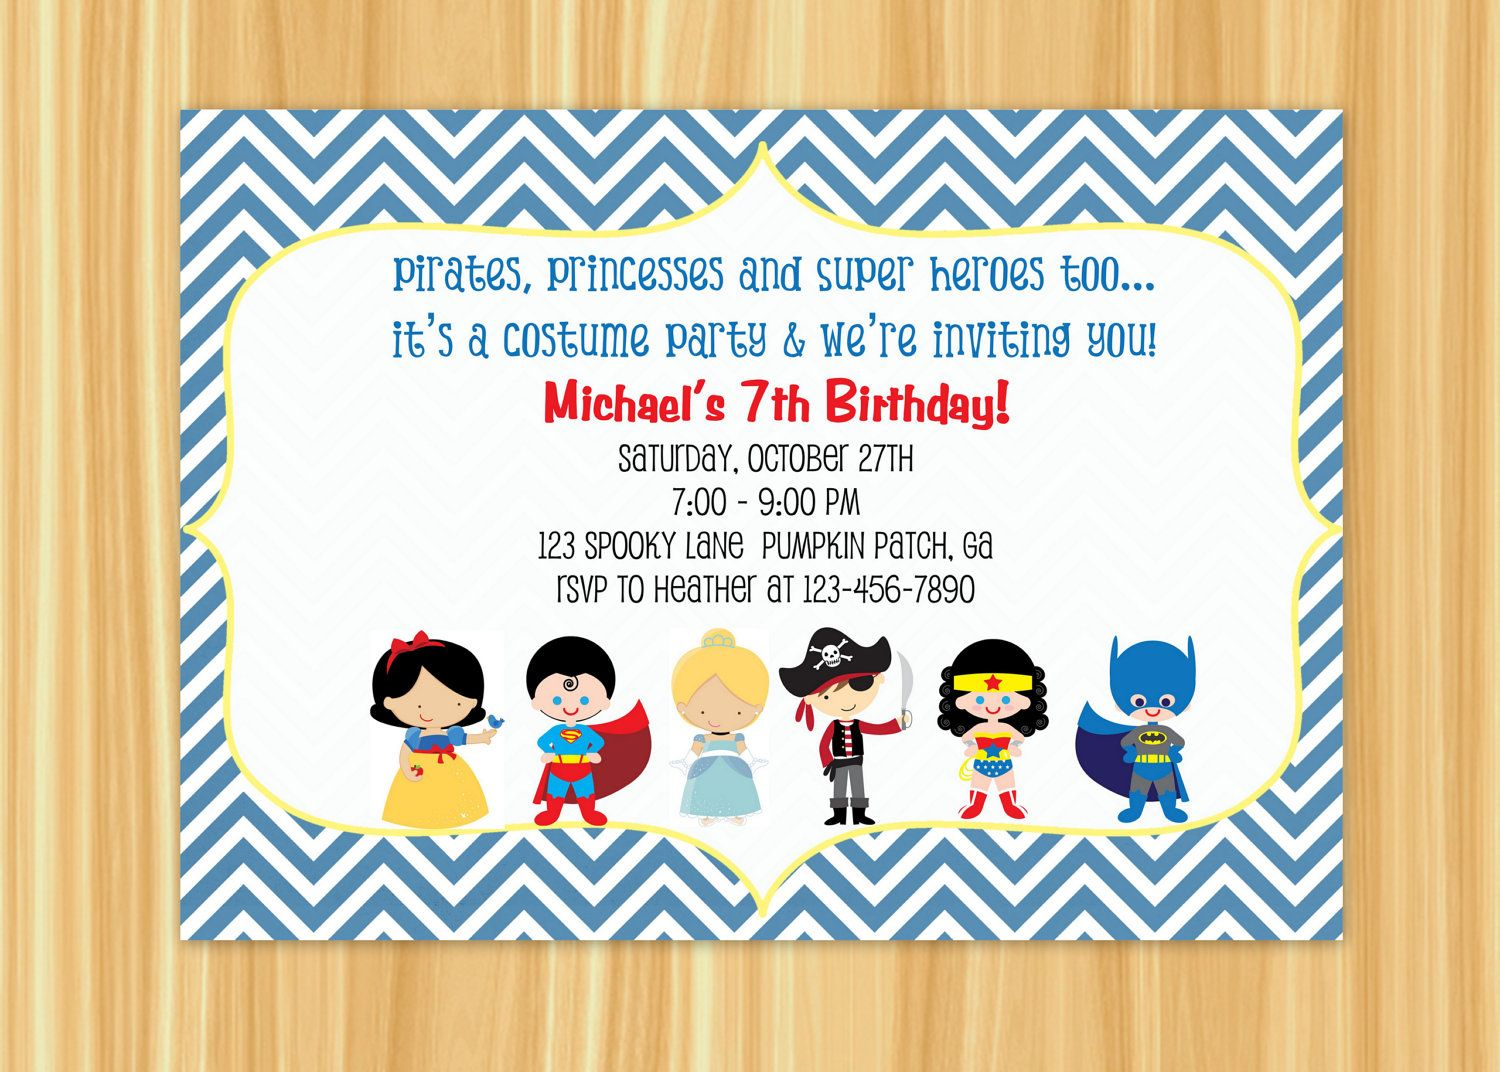 Custom Printable Kids Costume Party Birthday Invitation 1000 – Sample Kids Birthday Invitation